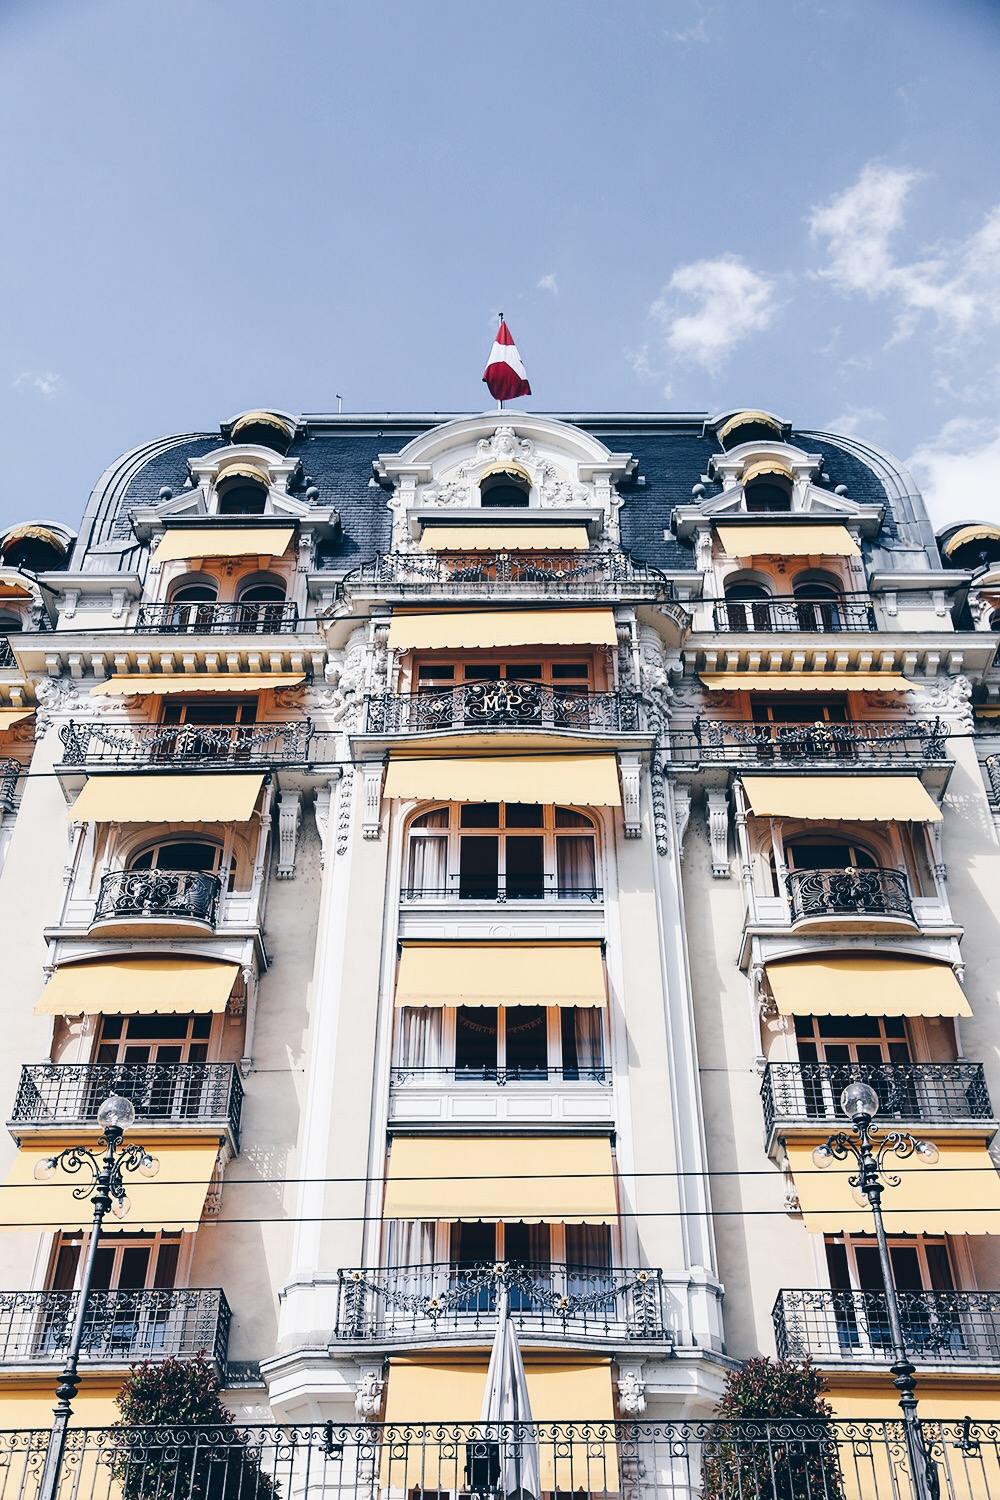 In one of our very first lists at This Is Glamorous had mentioned The Montreux Jazz Festival as one of the top five music festivals worth travelling for. The Fairmont Le Montreaux Palace could make its own list of places to see. Built in 1906, the Belle-Époque five-star luxury hotel sits on the shores of Lake Geneva, Switzerland. With 236 rooms, it is one of the largest hotels in the Swiss Riviera region. Here is but a glimpse . . .